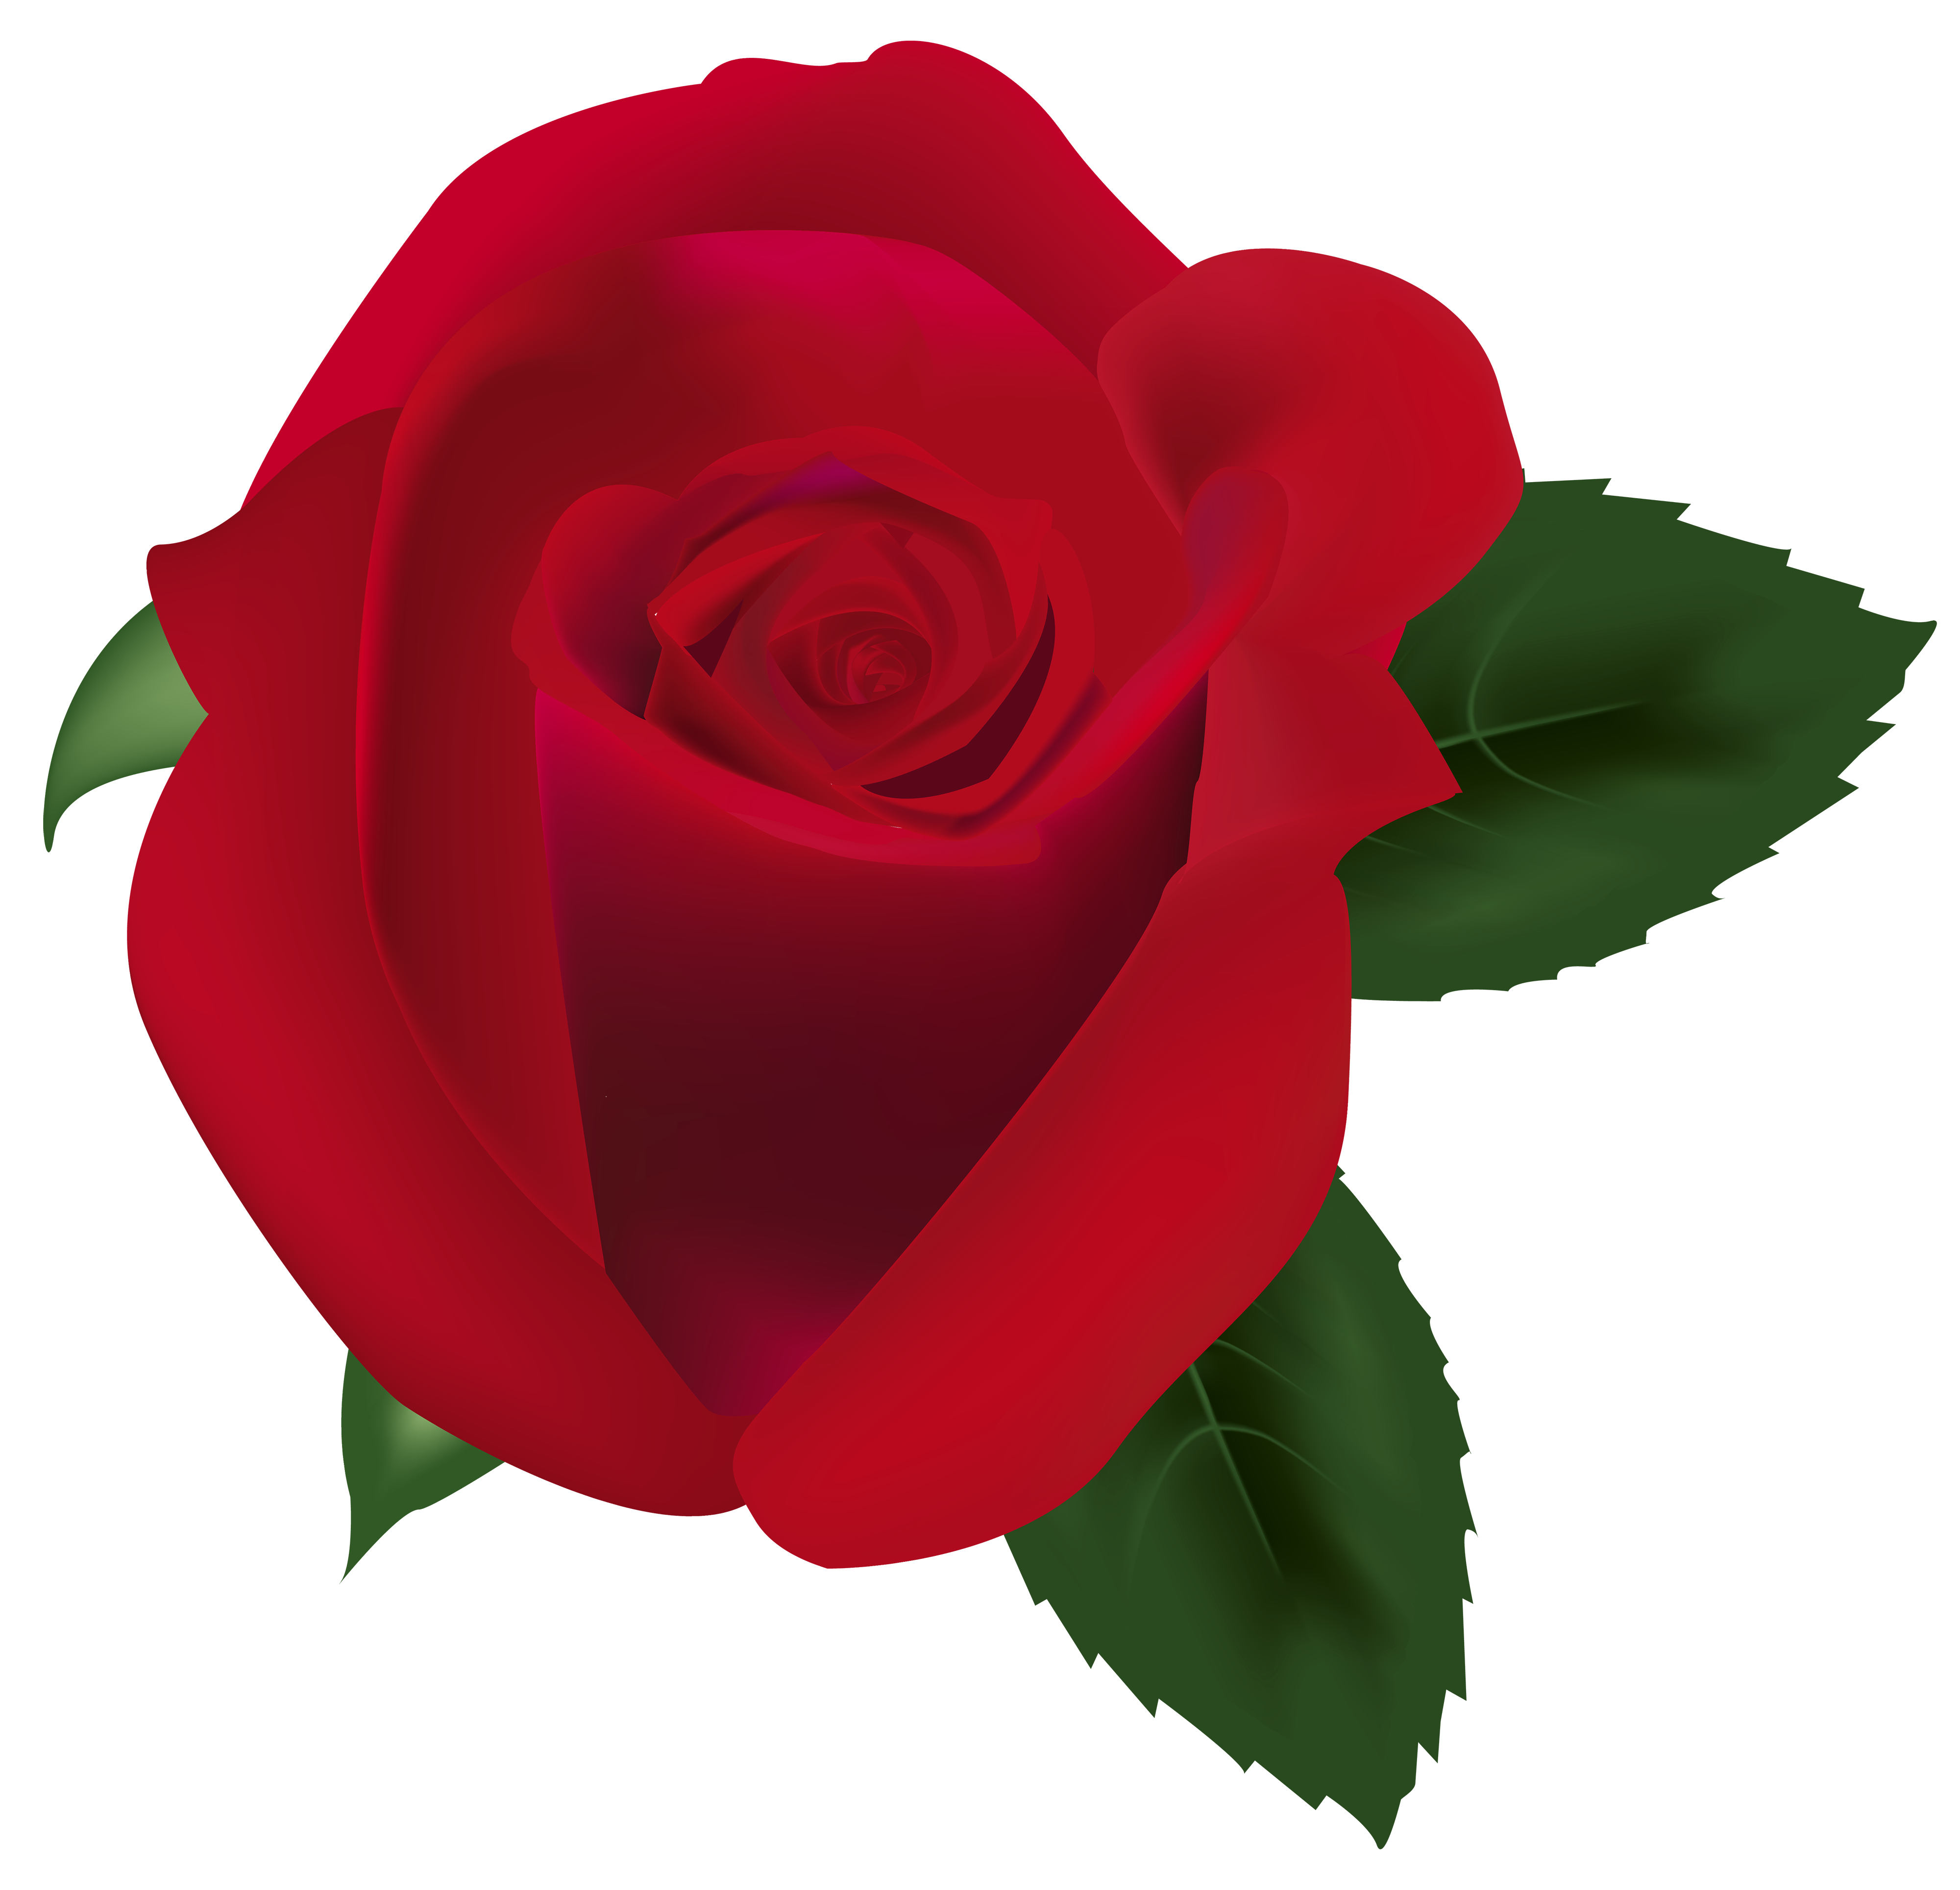 Rose png images. Red clipart image best